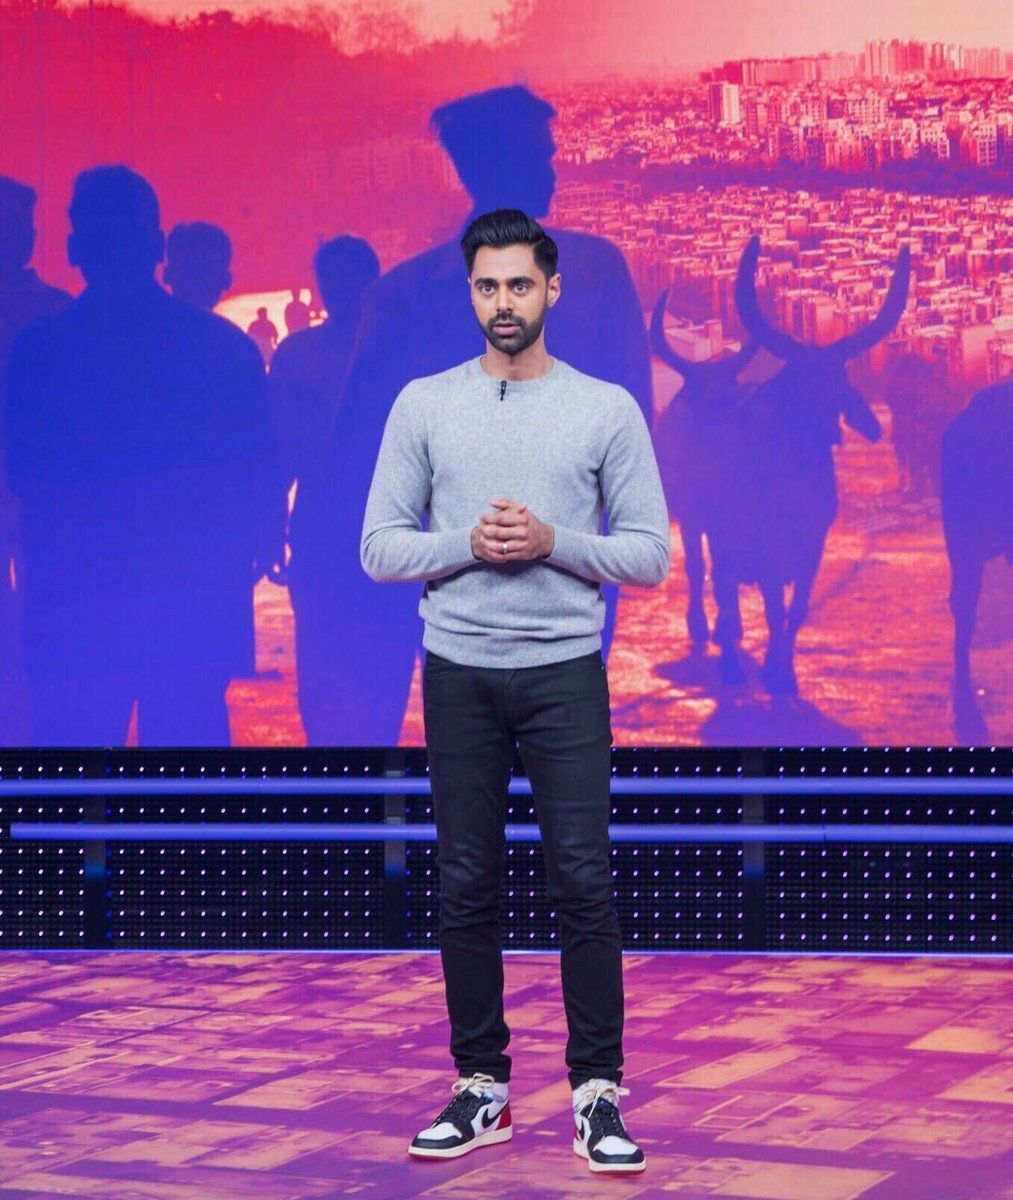 'Bhakts Are Coming': Hasan Minhaj's Episode On Lok Sabha Elections Has Twitter